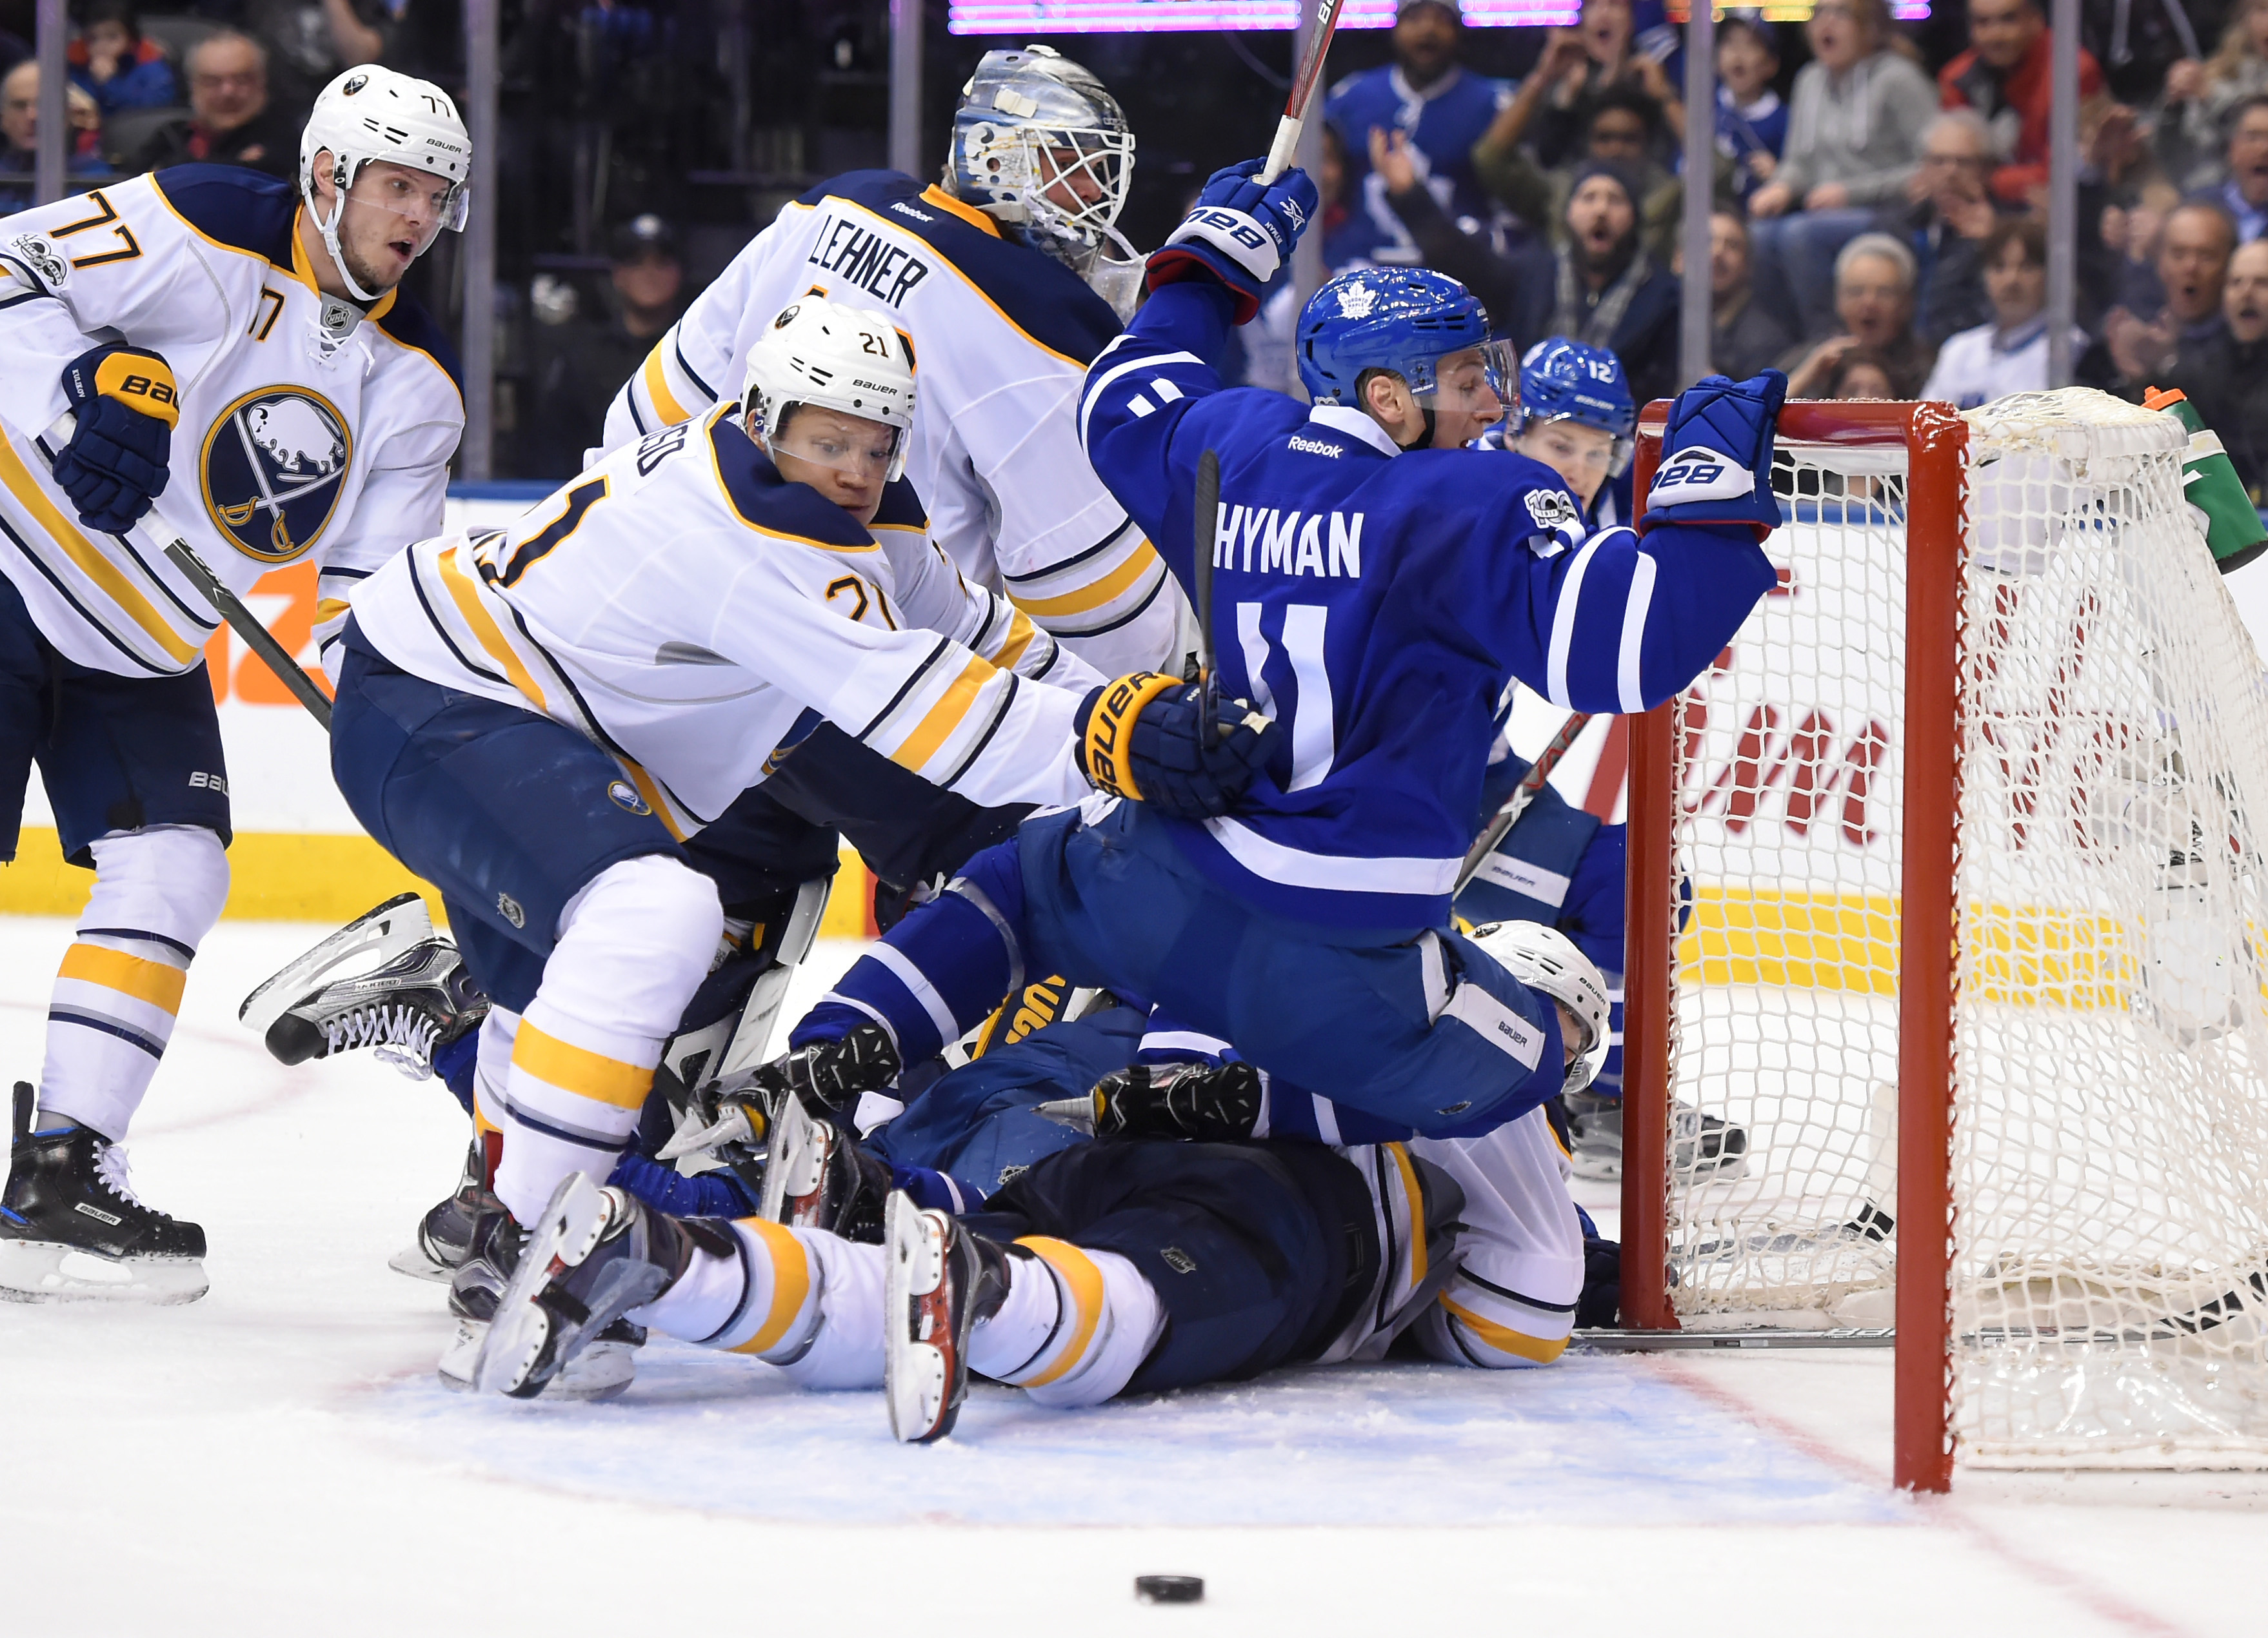 Sabres' Kyle Okposo knocks the Maple Leafs' Zach Hyman into the net as they both go after the loose puck in the second period on Saturday. (USA TODAY Sports)